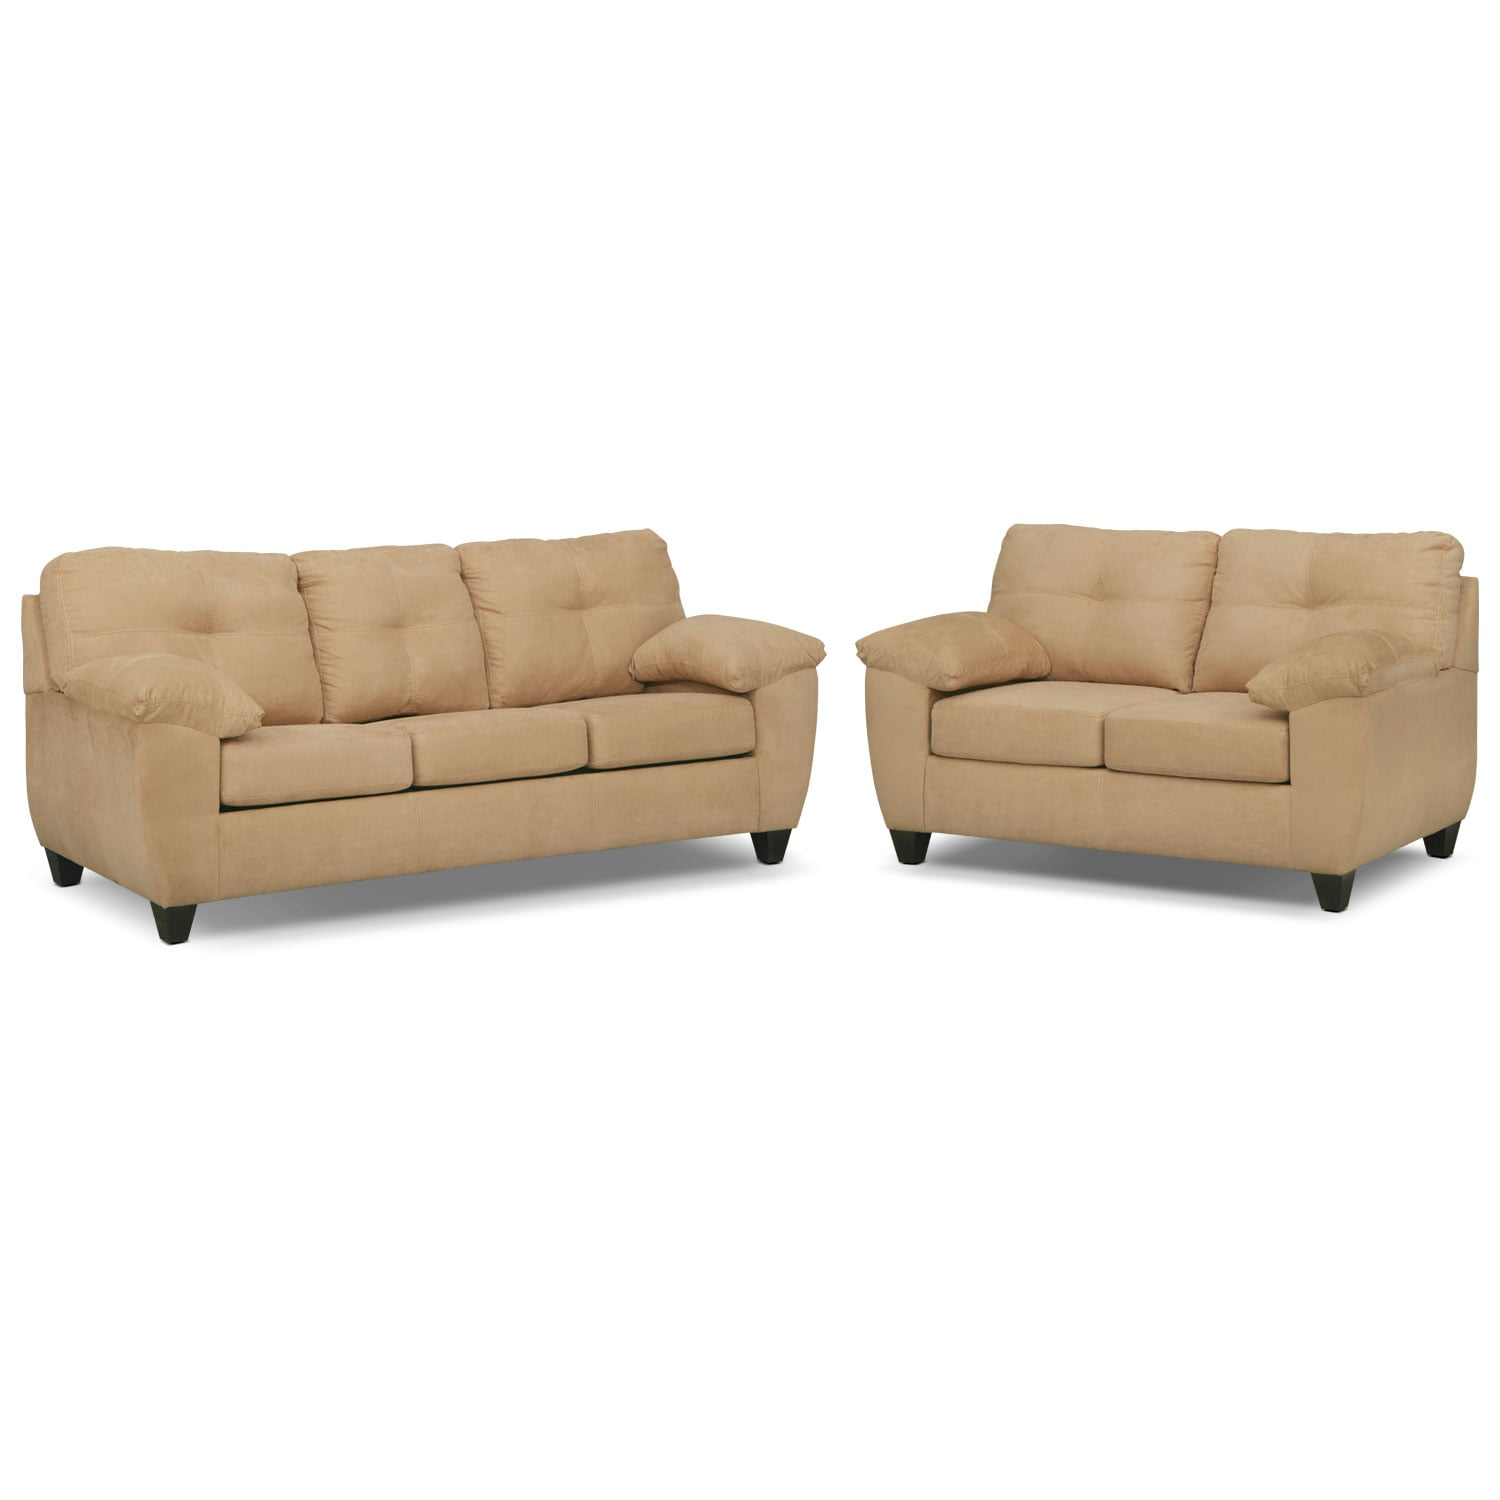 Living Room Furniture - Rialto Sofa and Loveseat Set - Camel